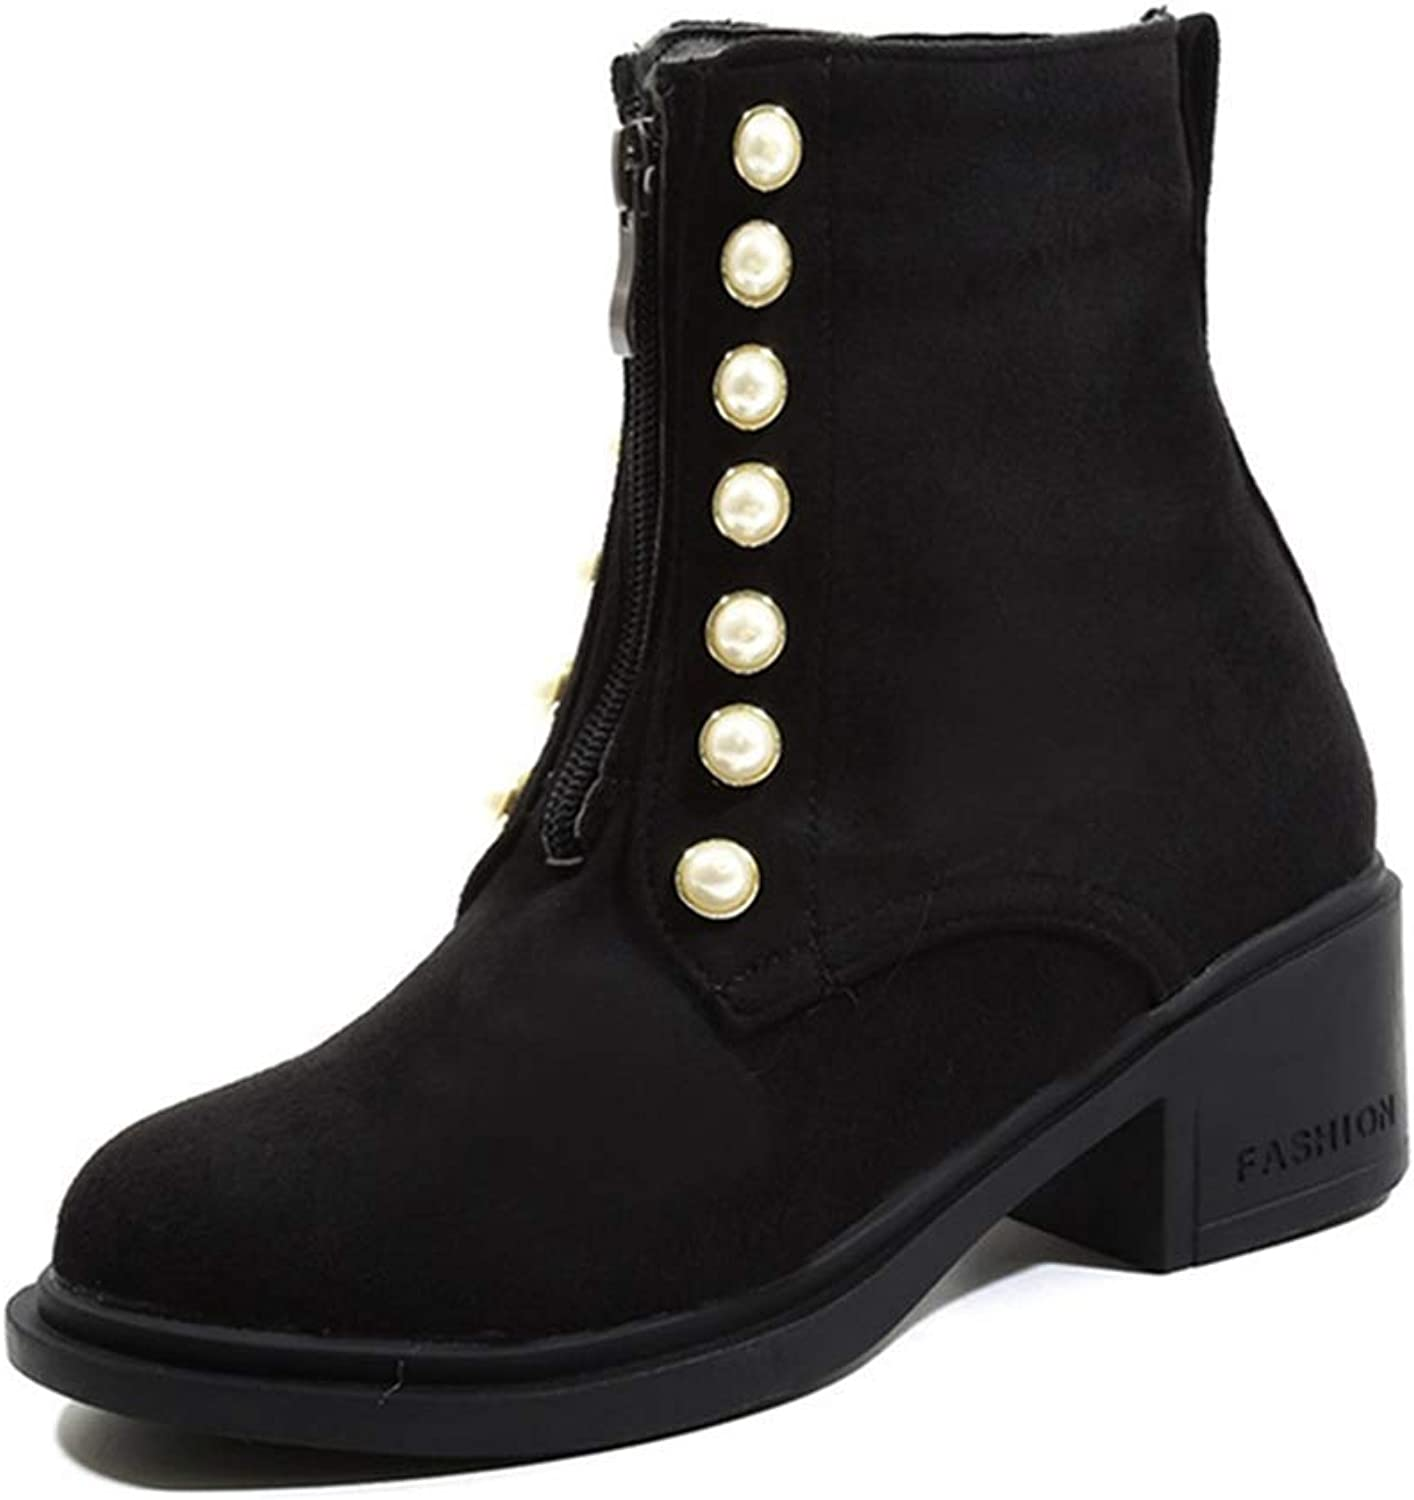 Fashion shoesbox Women's Chunky Mid Heel Pearls Ankle Boots Round Toe Platform Zipper Booties Martin Dress Short Boots